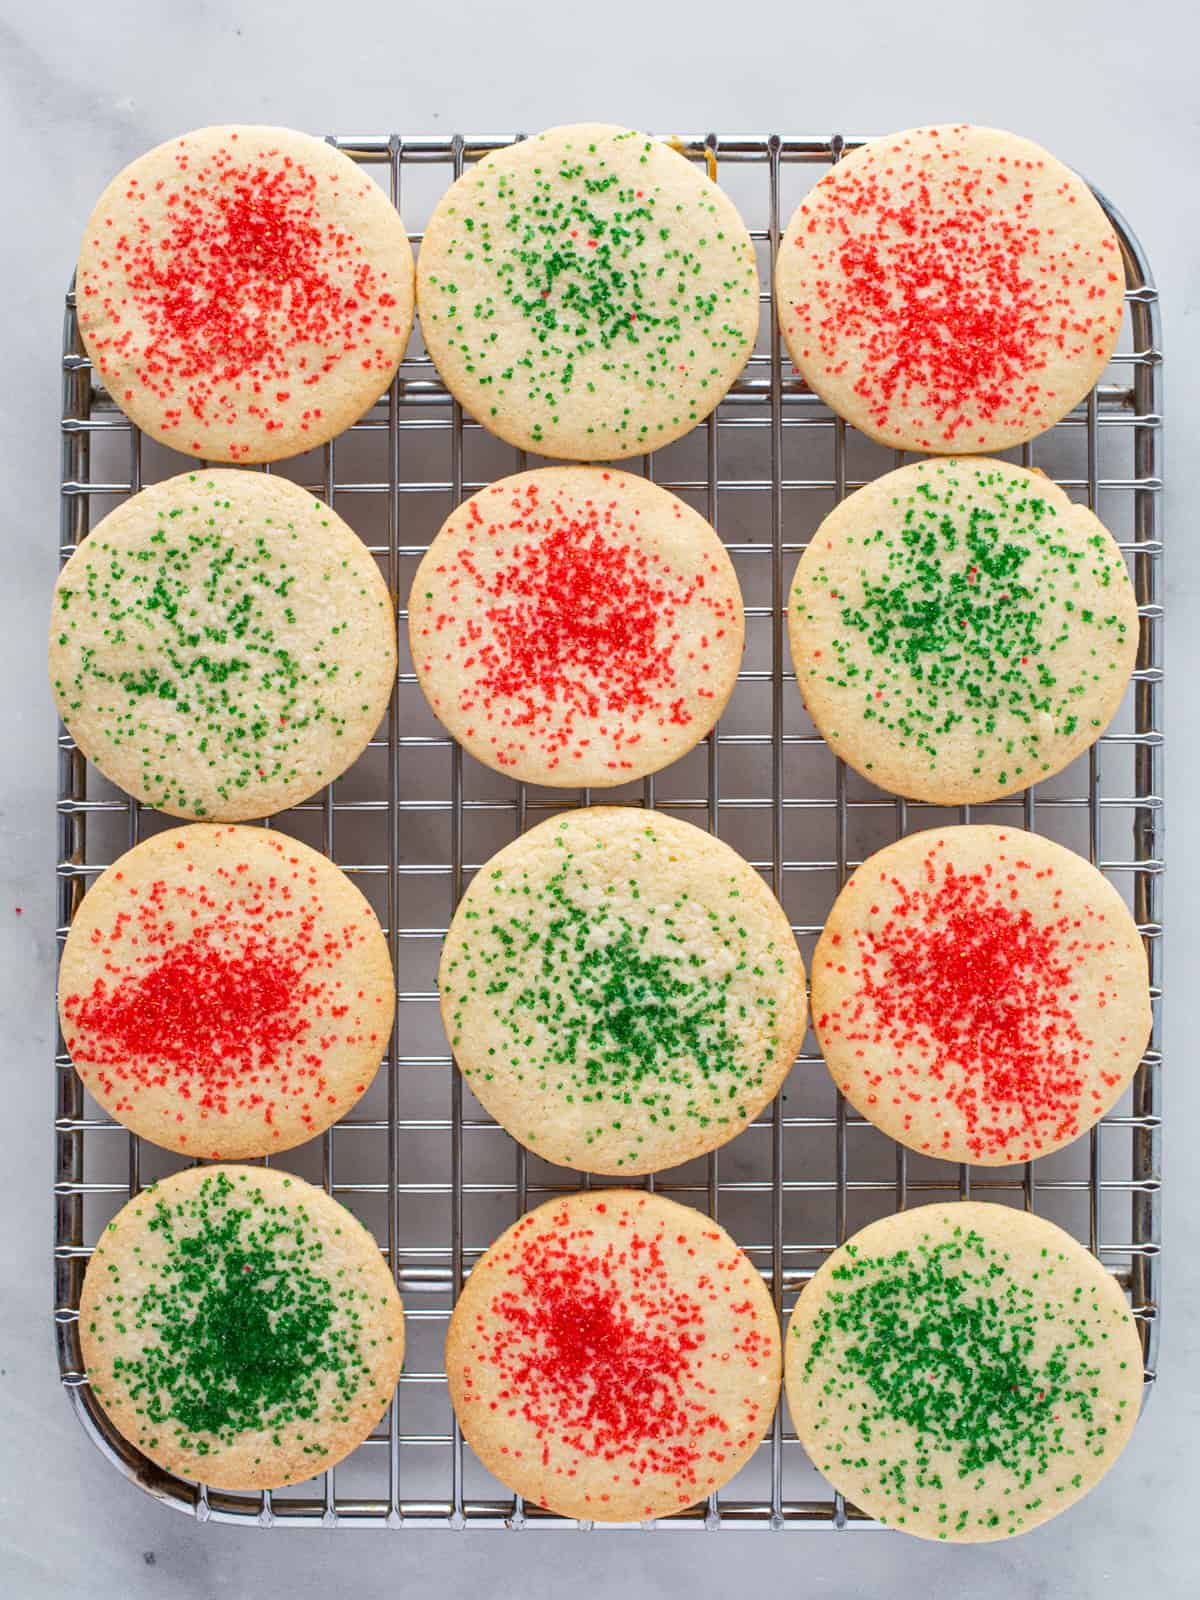 Gluten-free sugar cookies on a wire rack with red and green sugar.